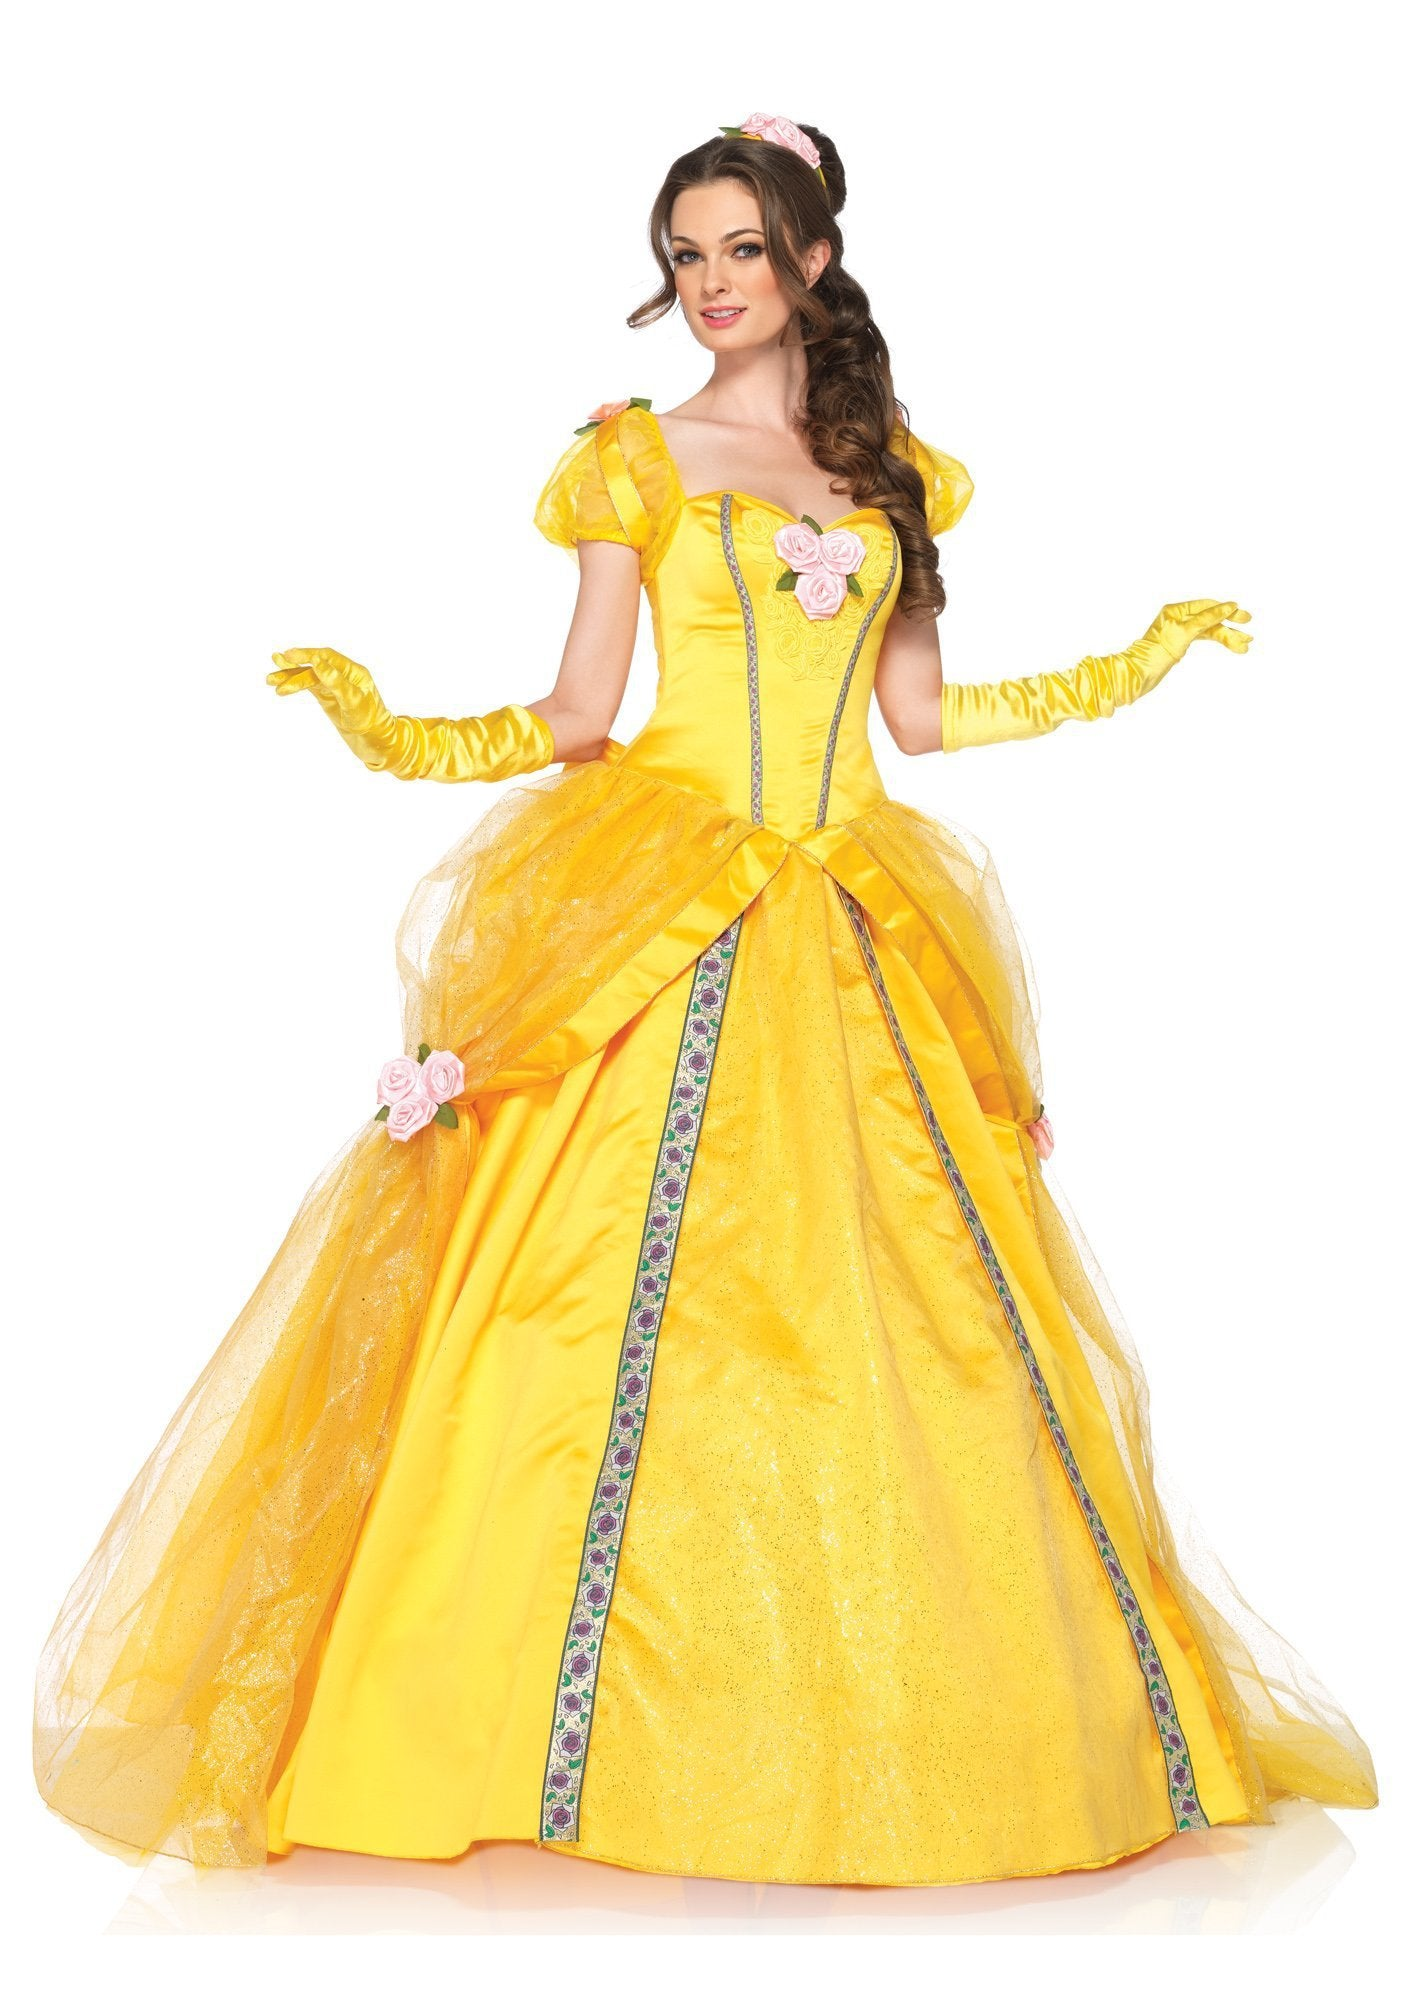 Leg Avenue Costumes LARGE / YELLOW Deluxe Belle Costume - Beauty & the Beast